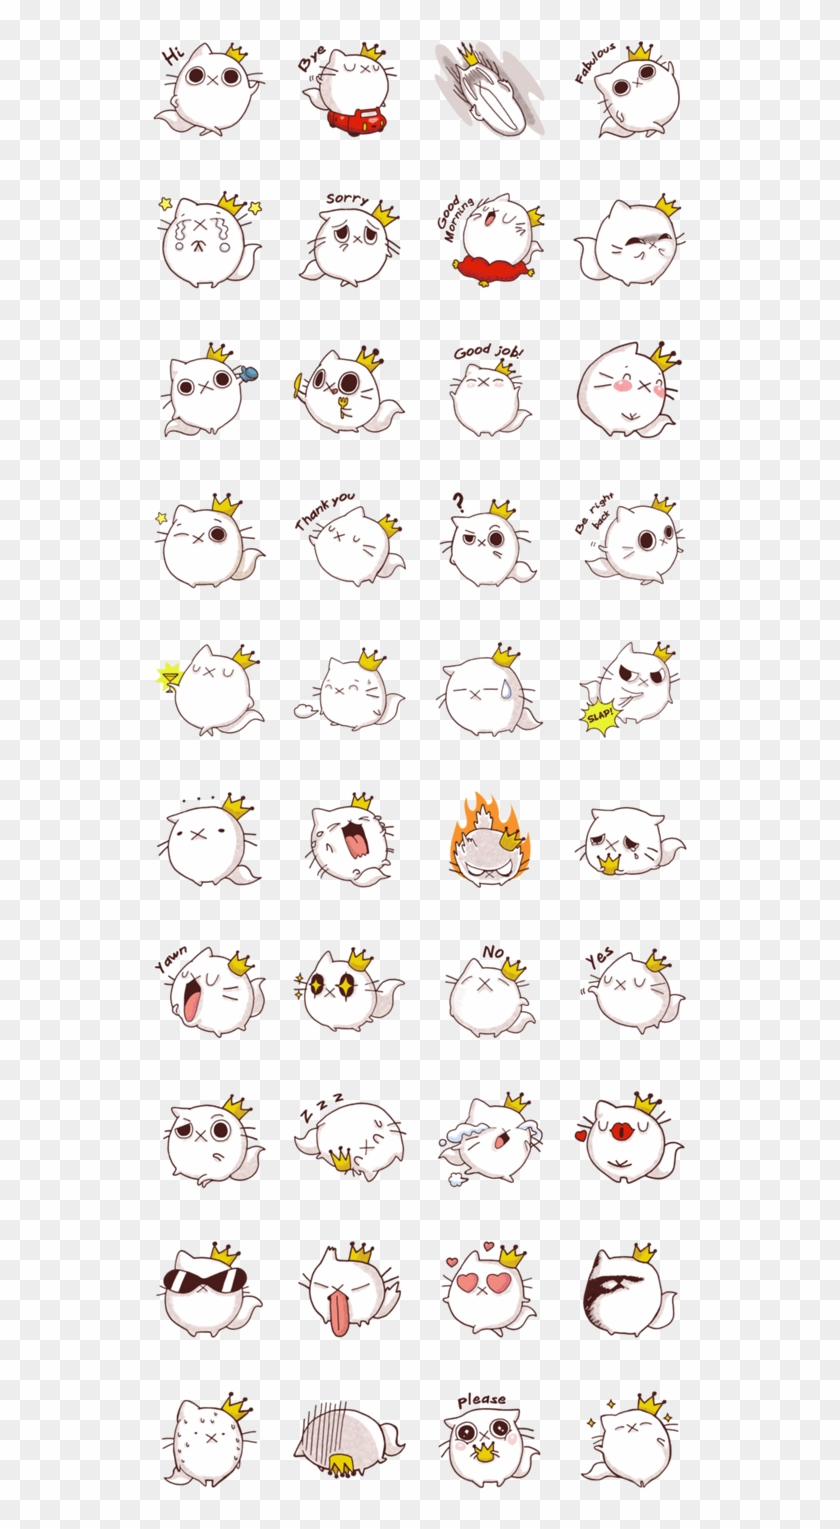 Fab Cat Line Stickers Domz Agsaway So Fabulous Hahaha - Line